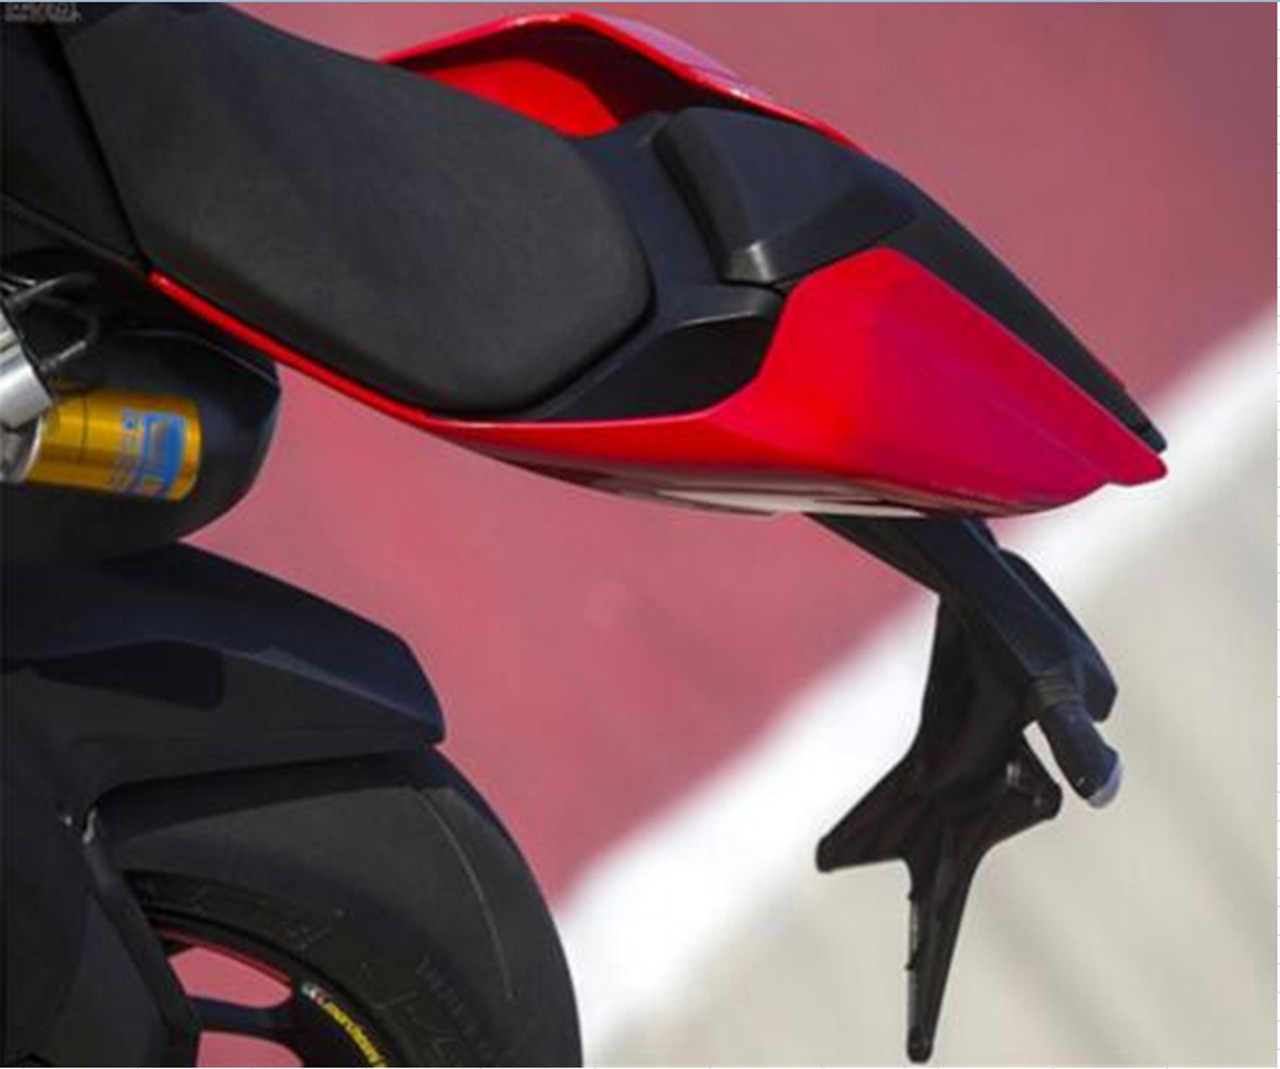 Rear Tail Solo Seat Cover Cowl Fairing for Ducati 1299 Panigale (2015-2016) Carbon